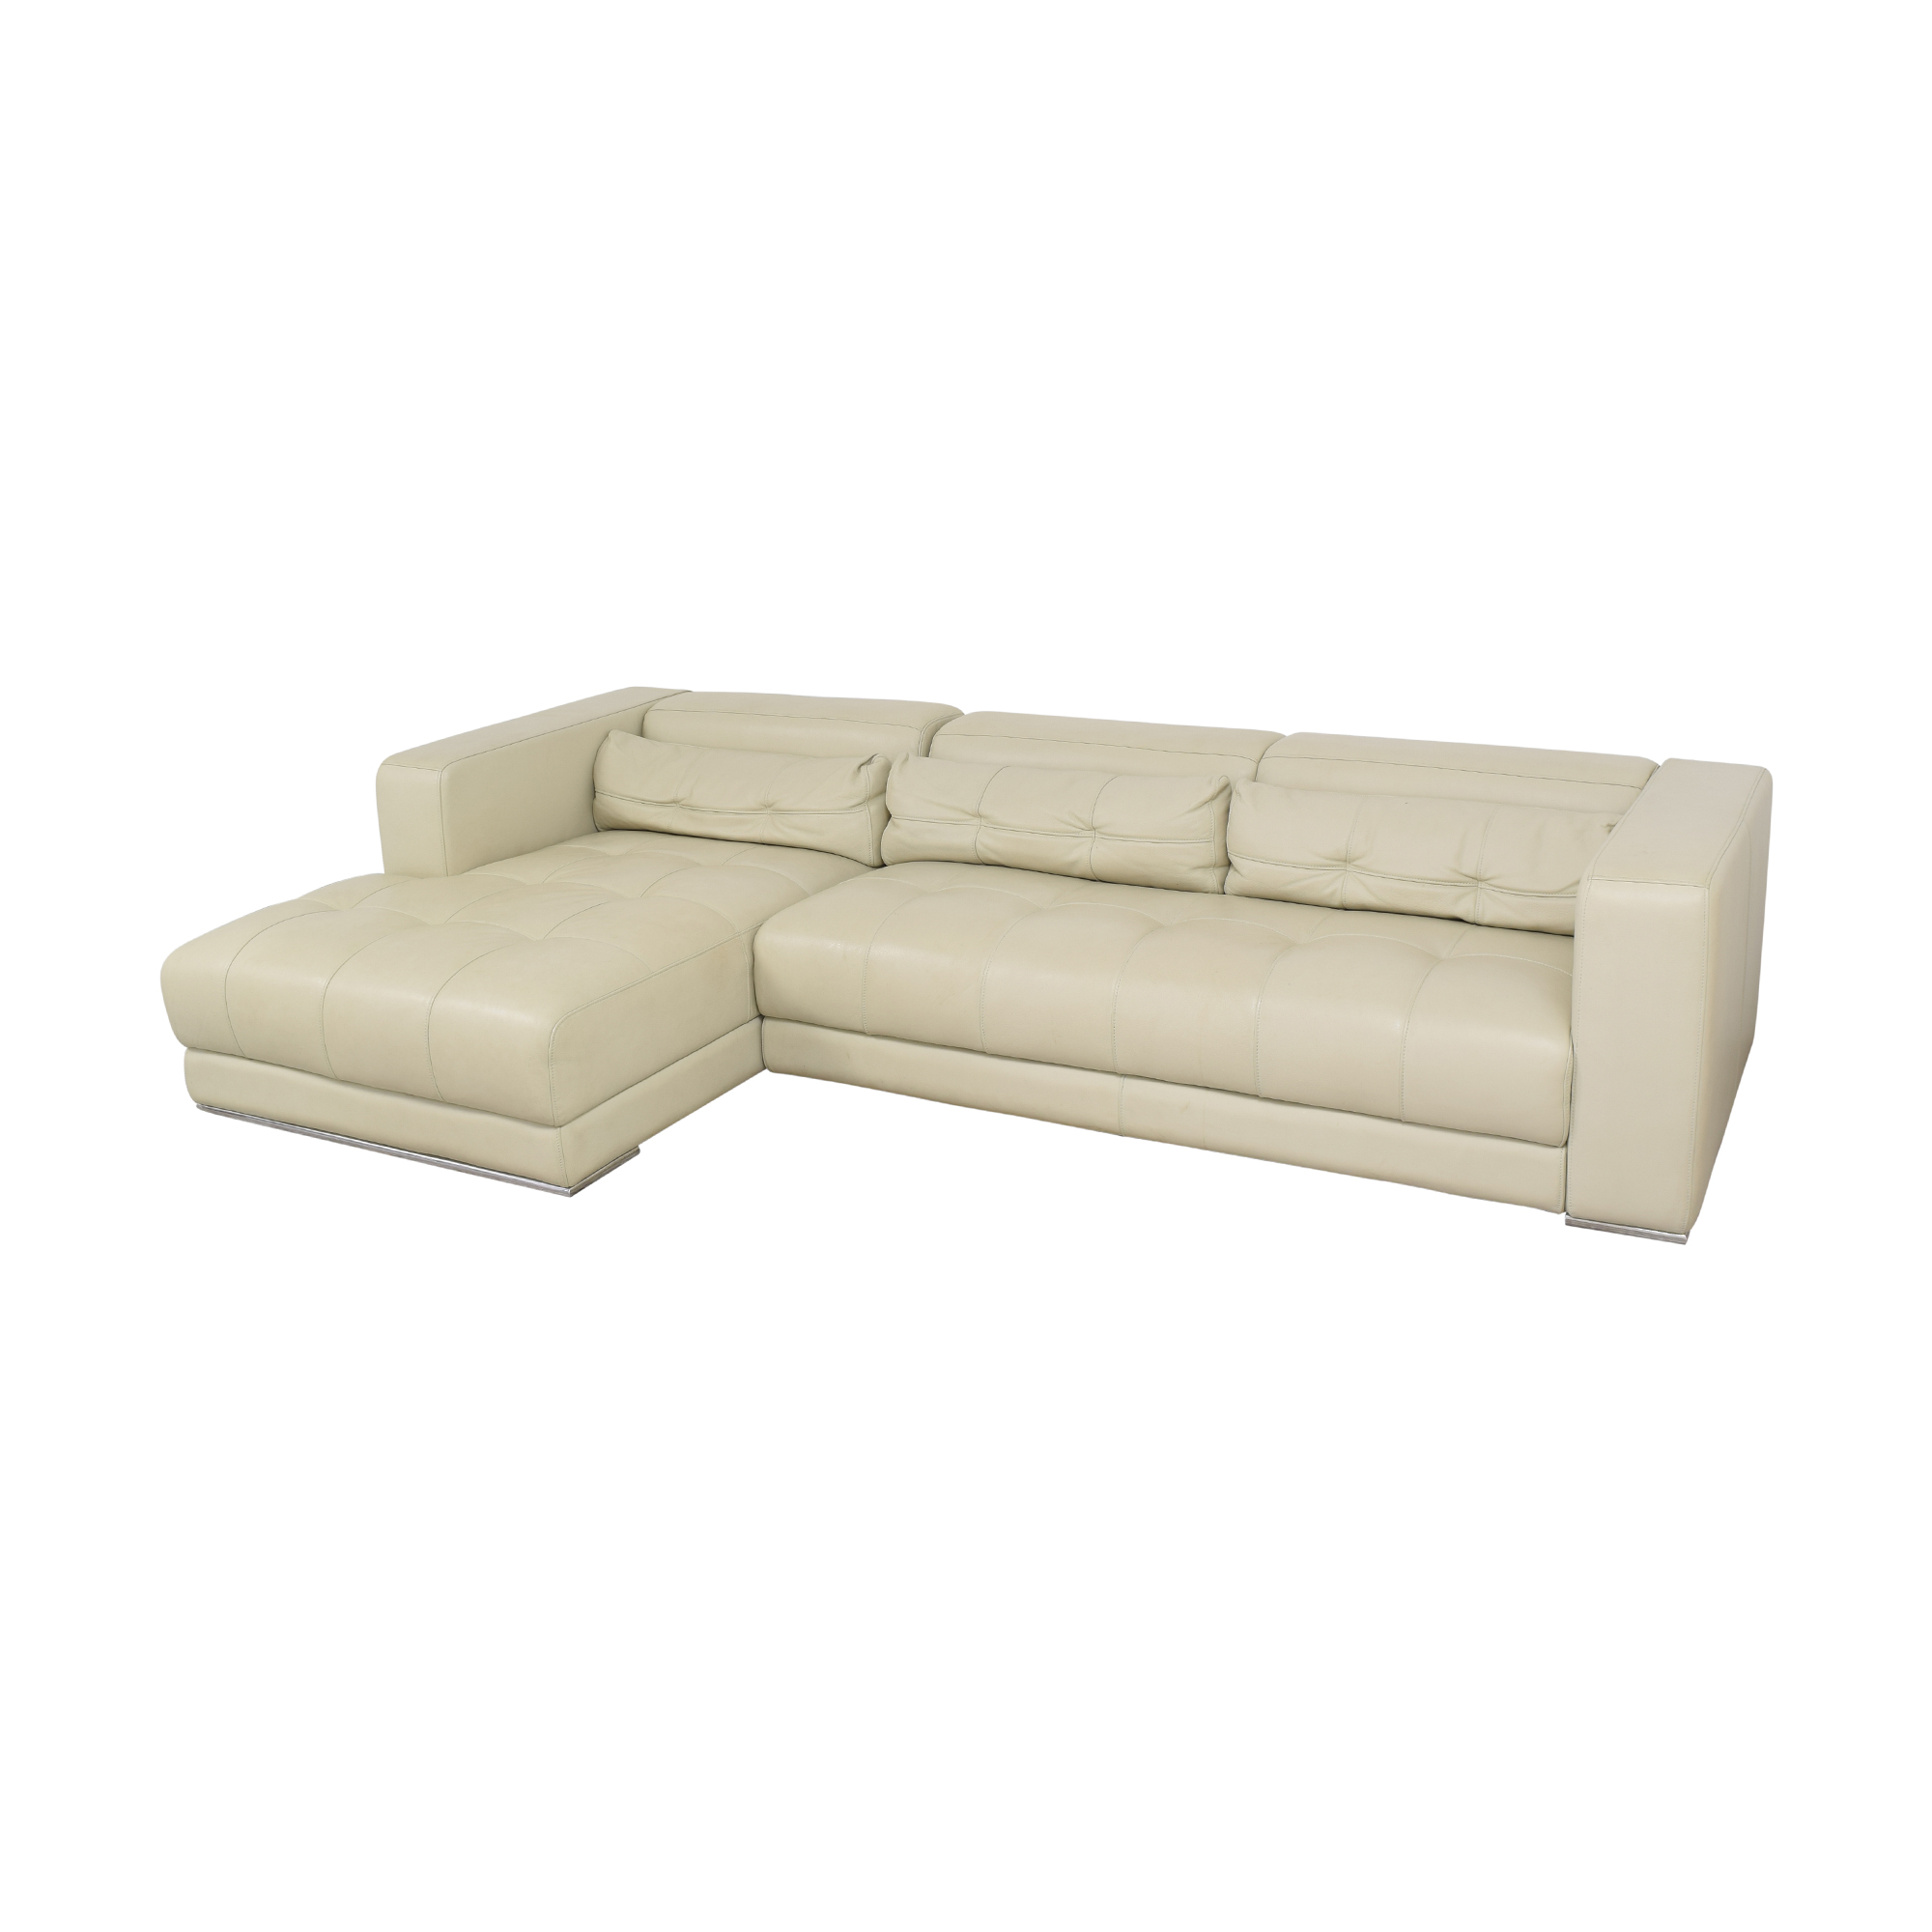 shop Maurice Villency Chaise Sectional Sofa Maurice Villency Sofas